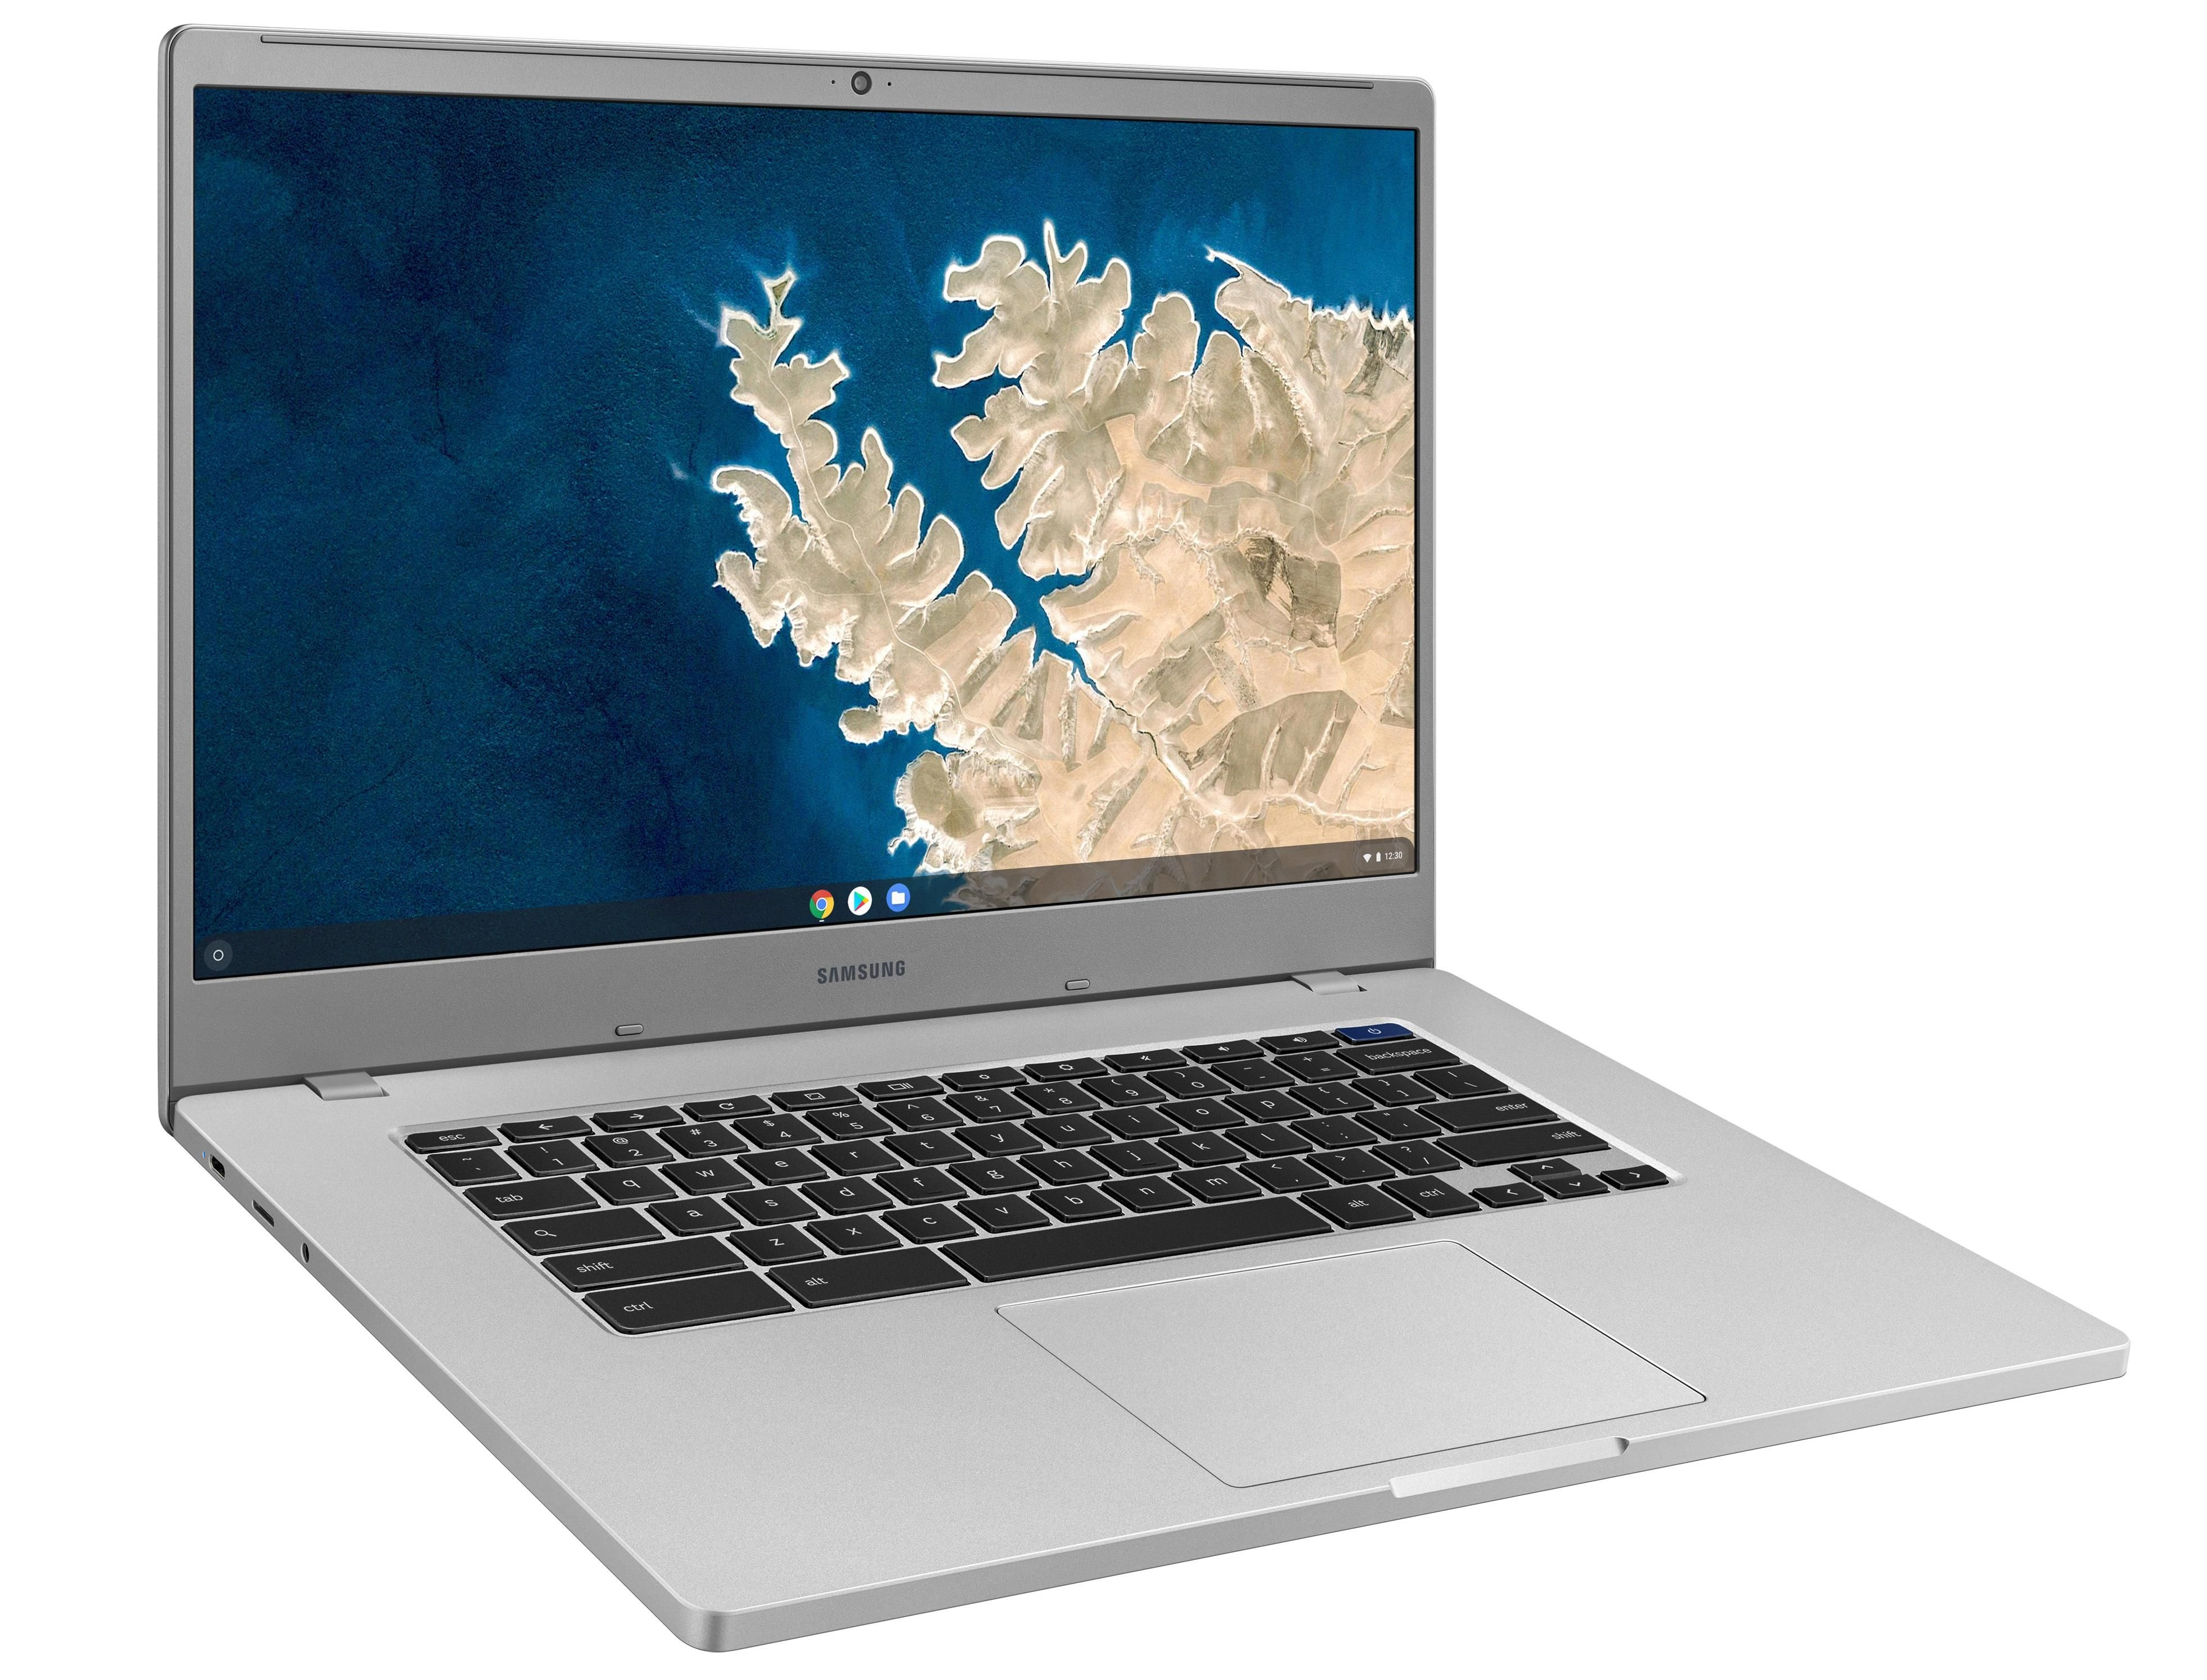 Hello friends! Samsung updates Chromebook lineup with two